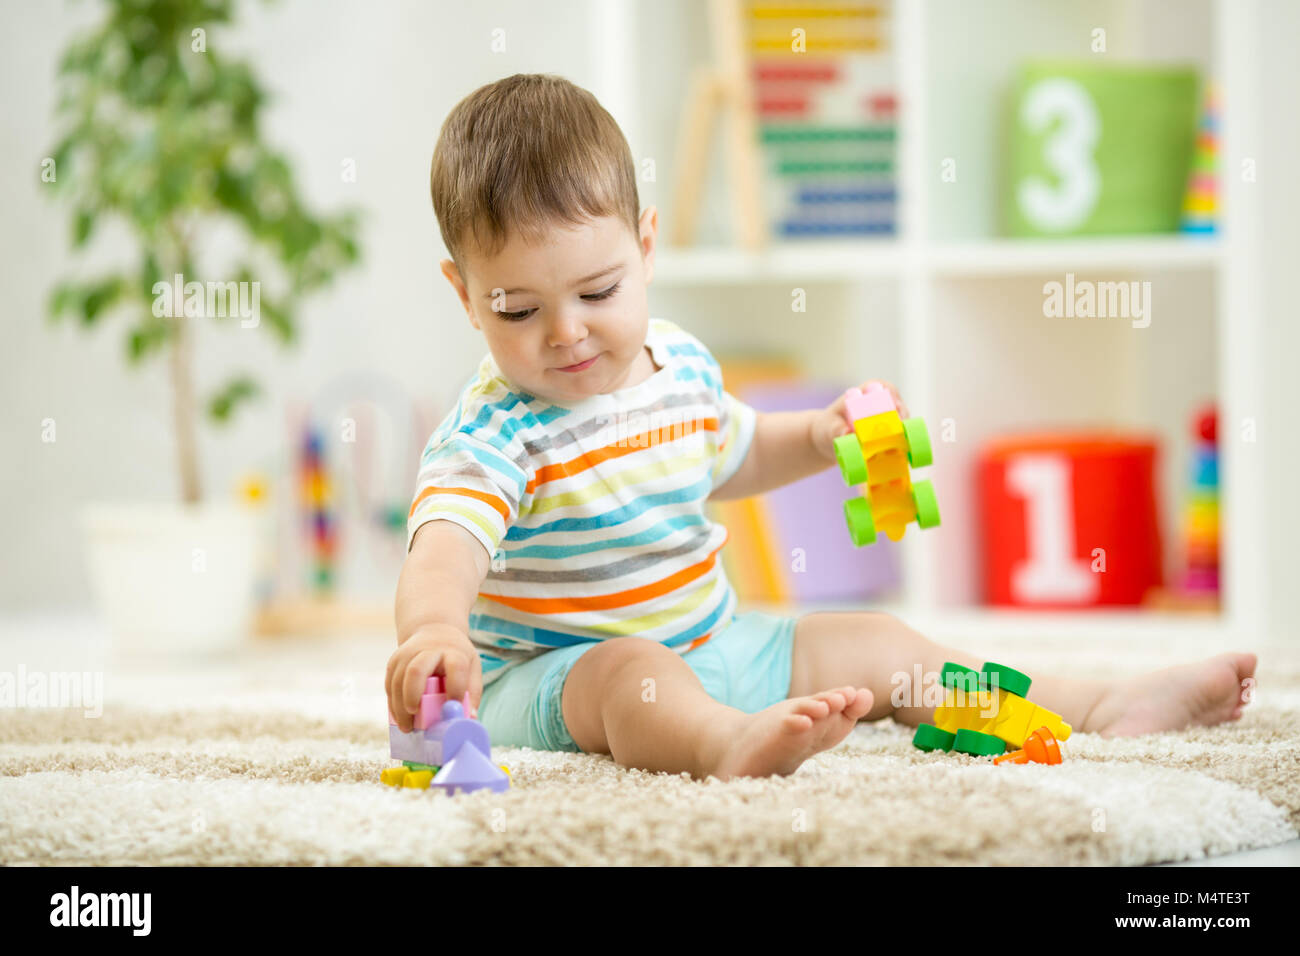 Happy baby playing with colorful plastic bricks on the floor. Toddler having fun and building a train out of constructor - Stock Image